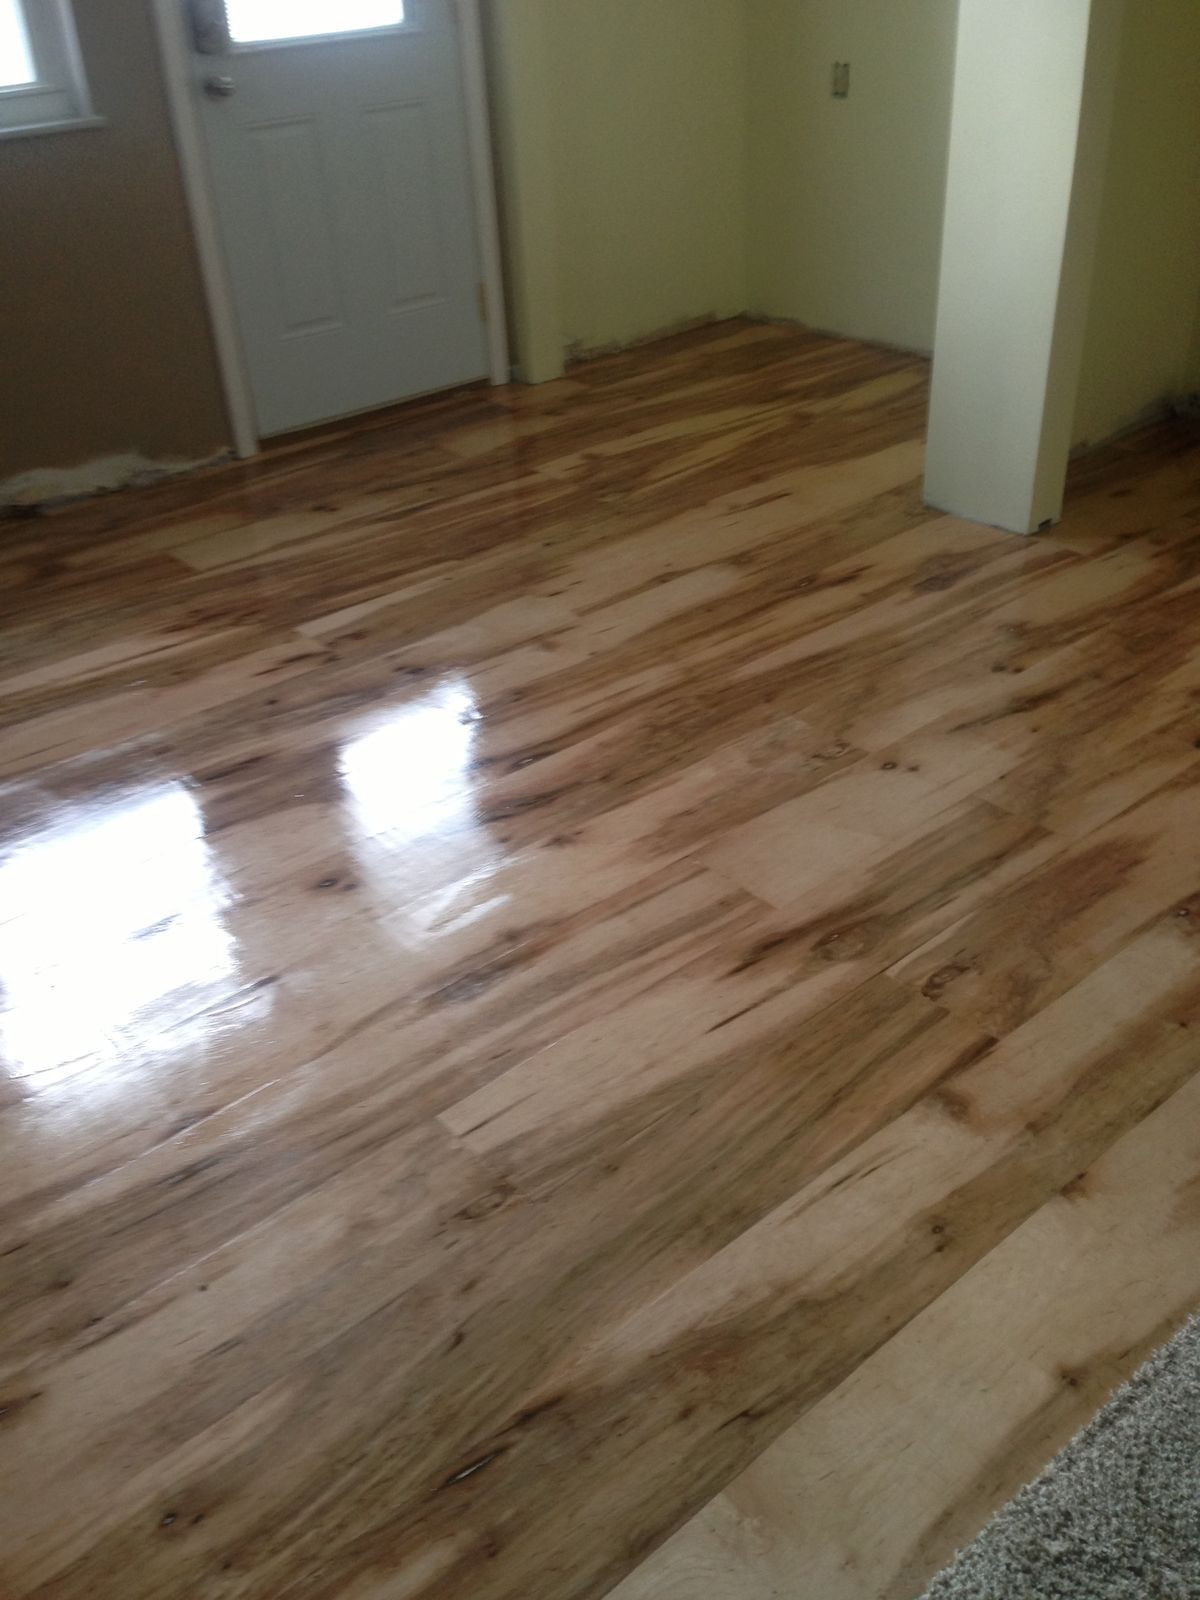 Plywood flooring Plywood flooring, Diy flooring